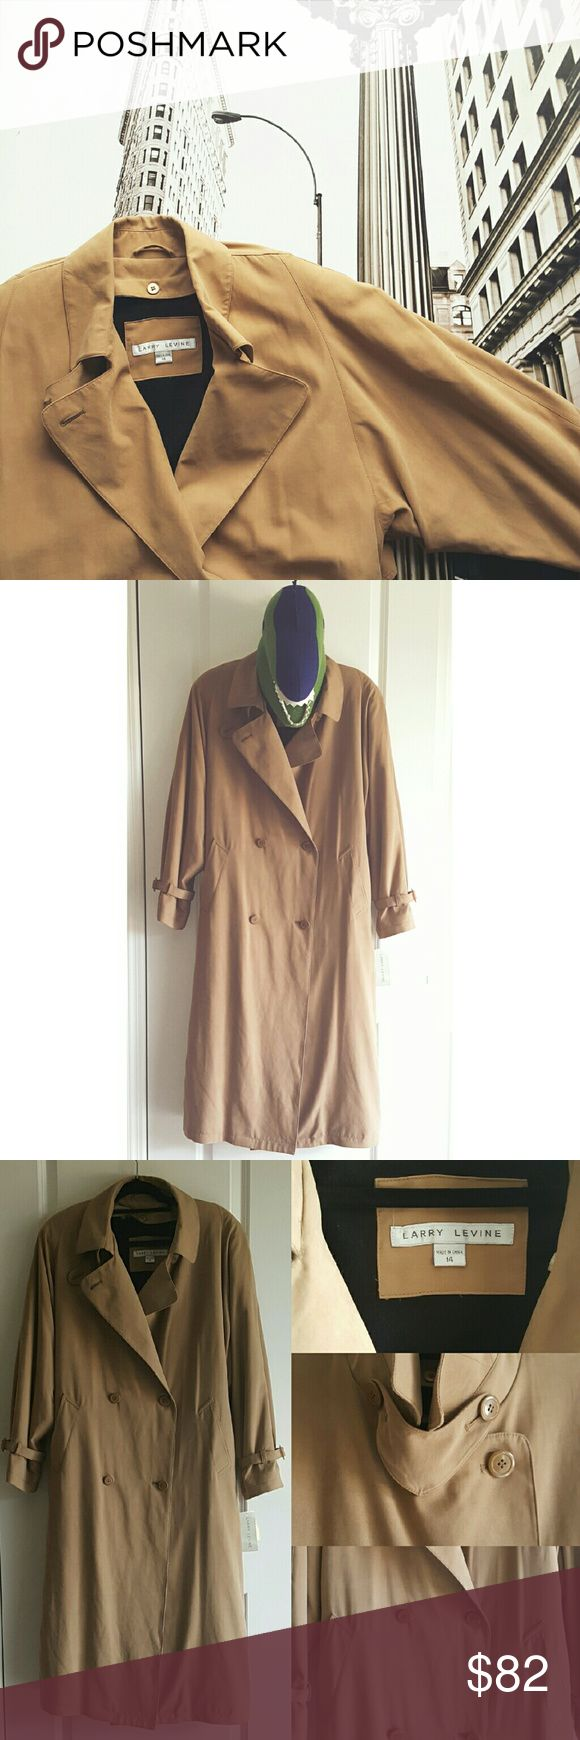 Larry Levine Trench Coat Gorgeous NWT Trench Coat! Perfect for this fall and winter season!!! Beautiful trench coat details. Can button either way, left or right side. Grab this before it's gone!! 🎉 Every purchase enters you in for a gift card drawing at the end of the month. Check out the Closet Rules listing for details. 💖 Larry Levine Jackets & Coats Trench Coats